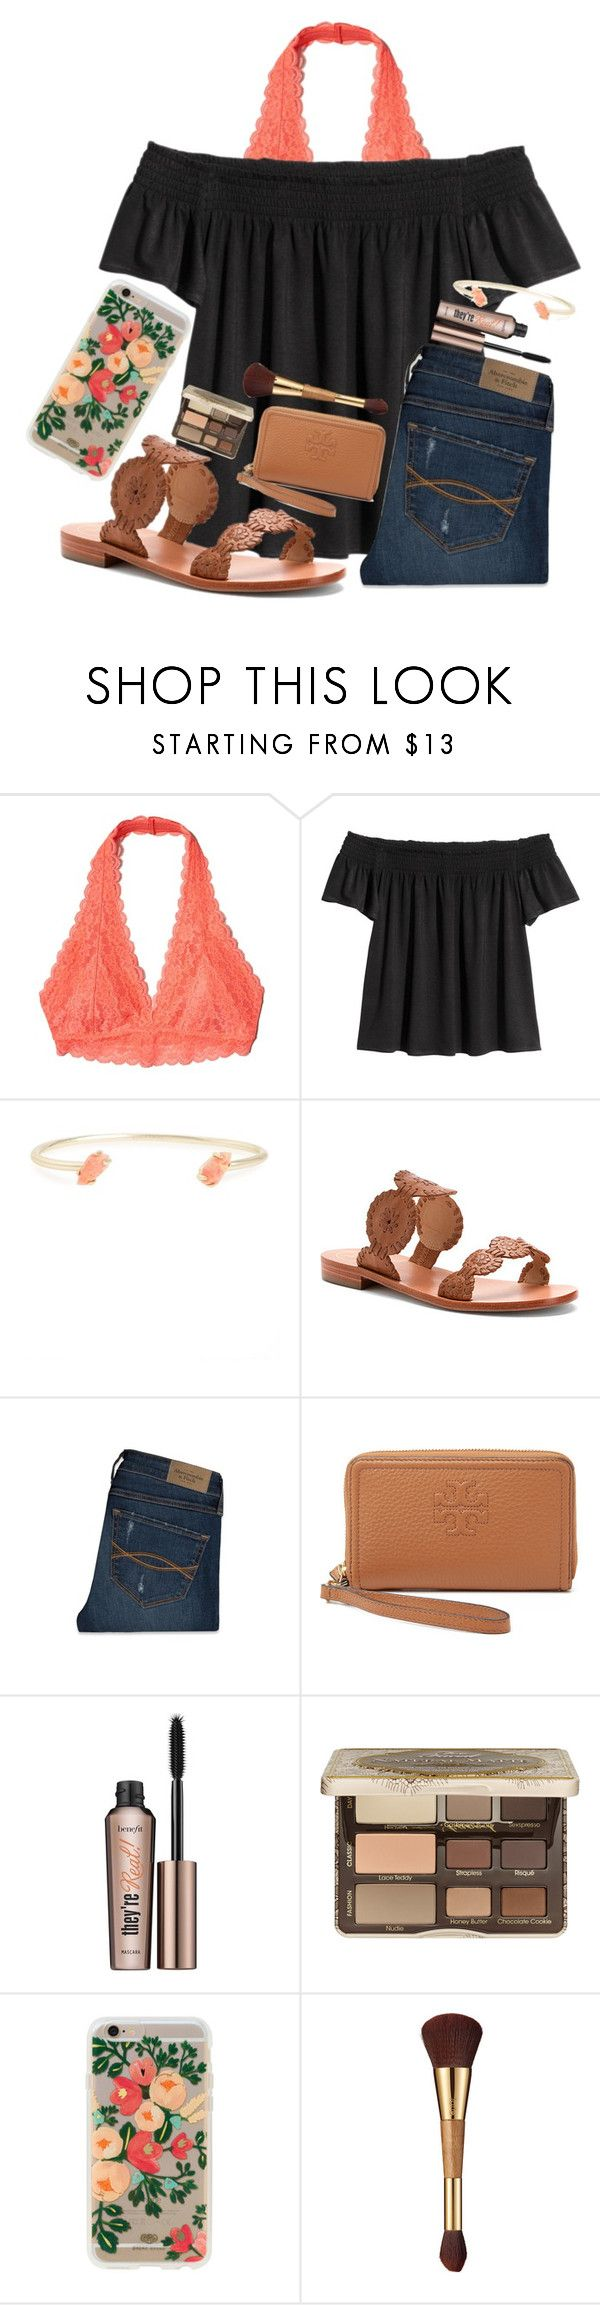 """""""Coral """" by nhumphrey ❤ liked on Polyvore featuring Hollister Co., Kendra Scott, Jack Rogers, Abercrombie & Fitch, Tory Burch, Benefit, Too Faced Cosmetics, Rifle Paper Co and tarte"""